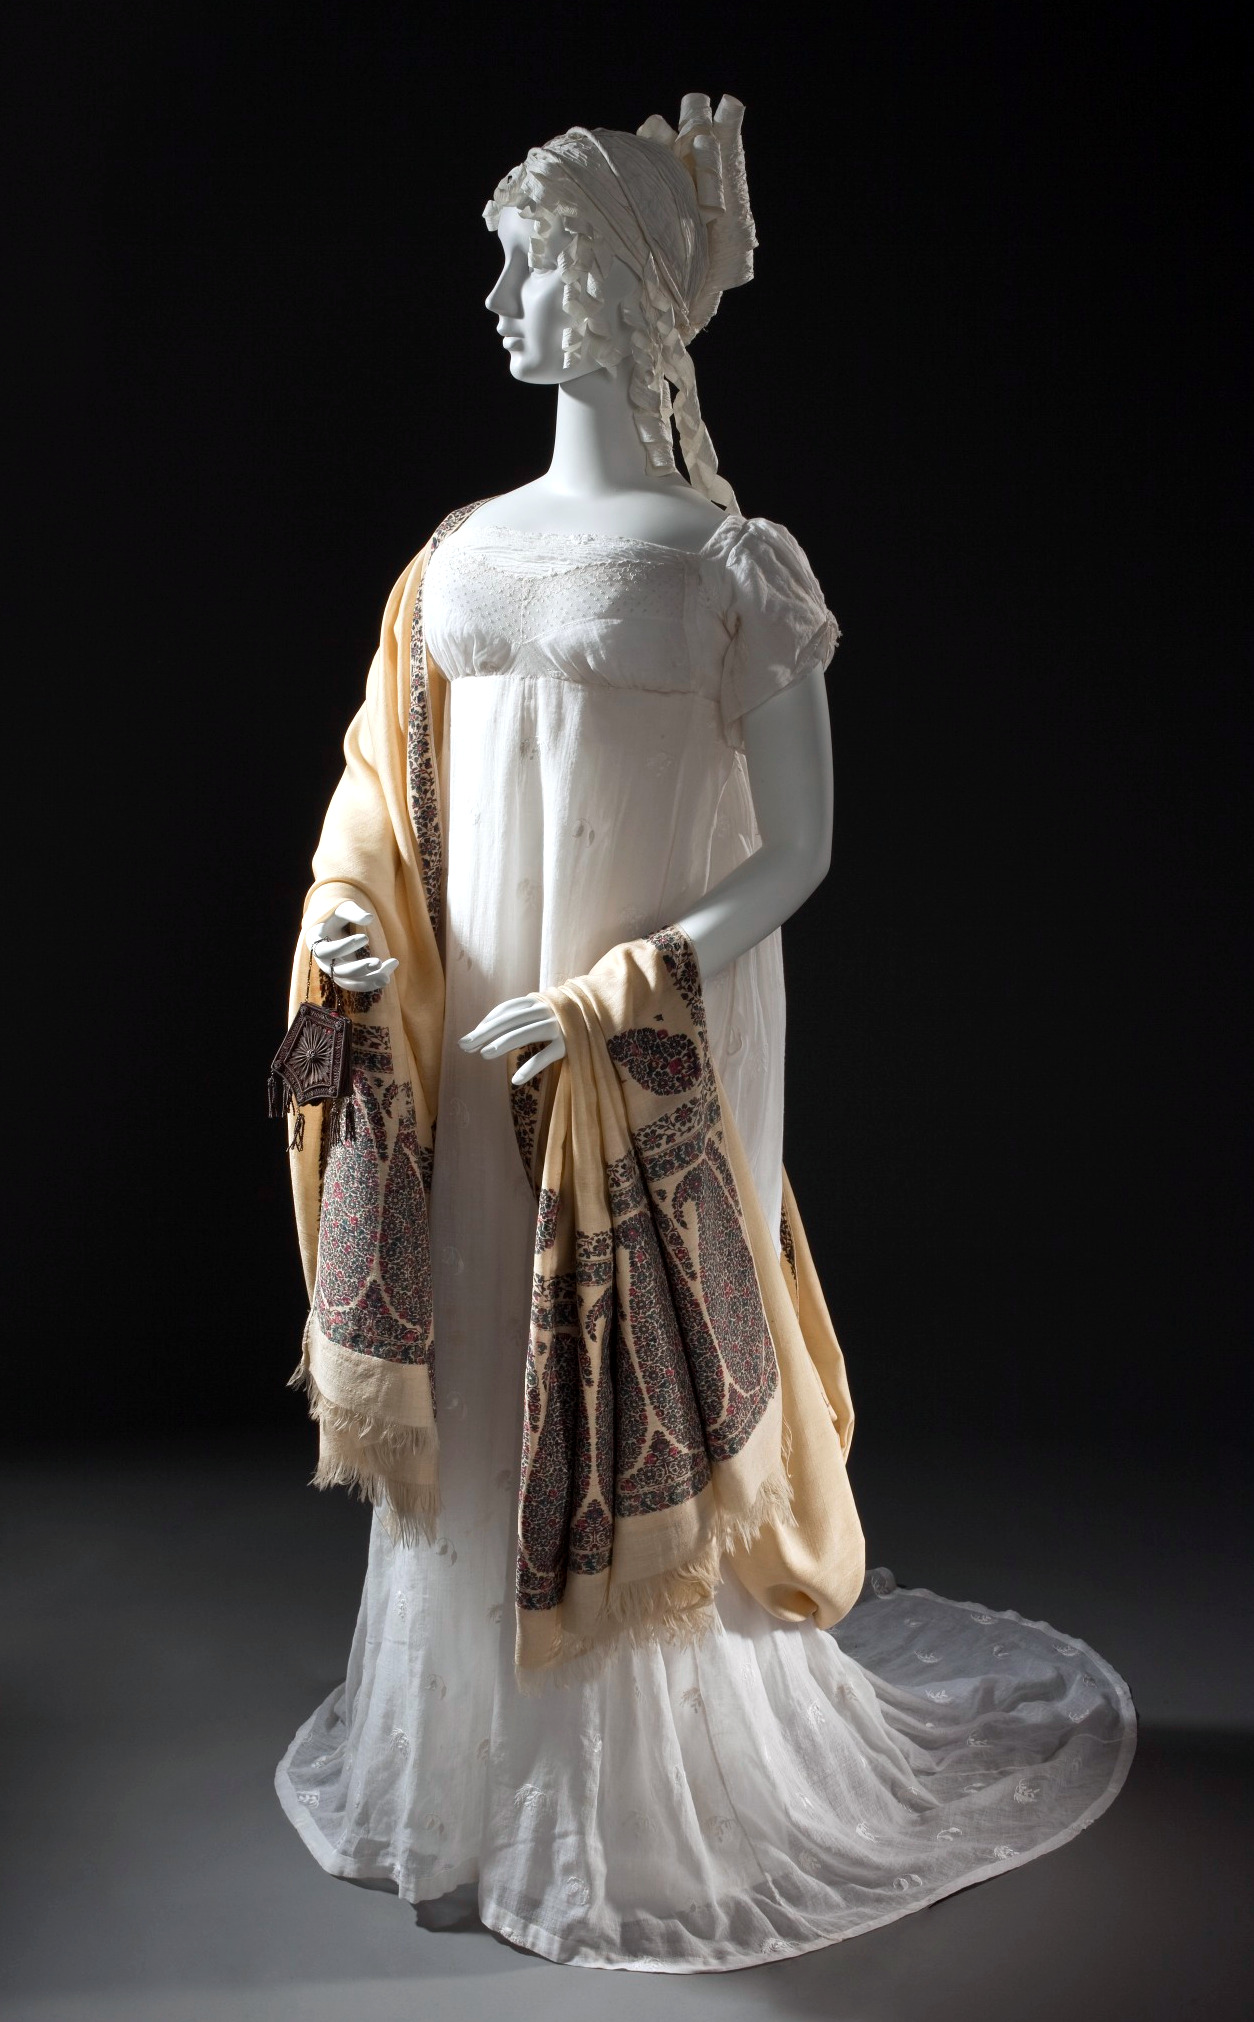 1800 Empire Silhouette Dress, LACMA